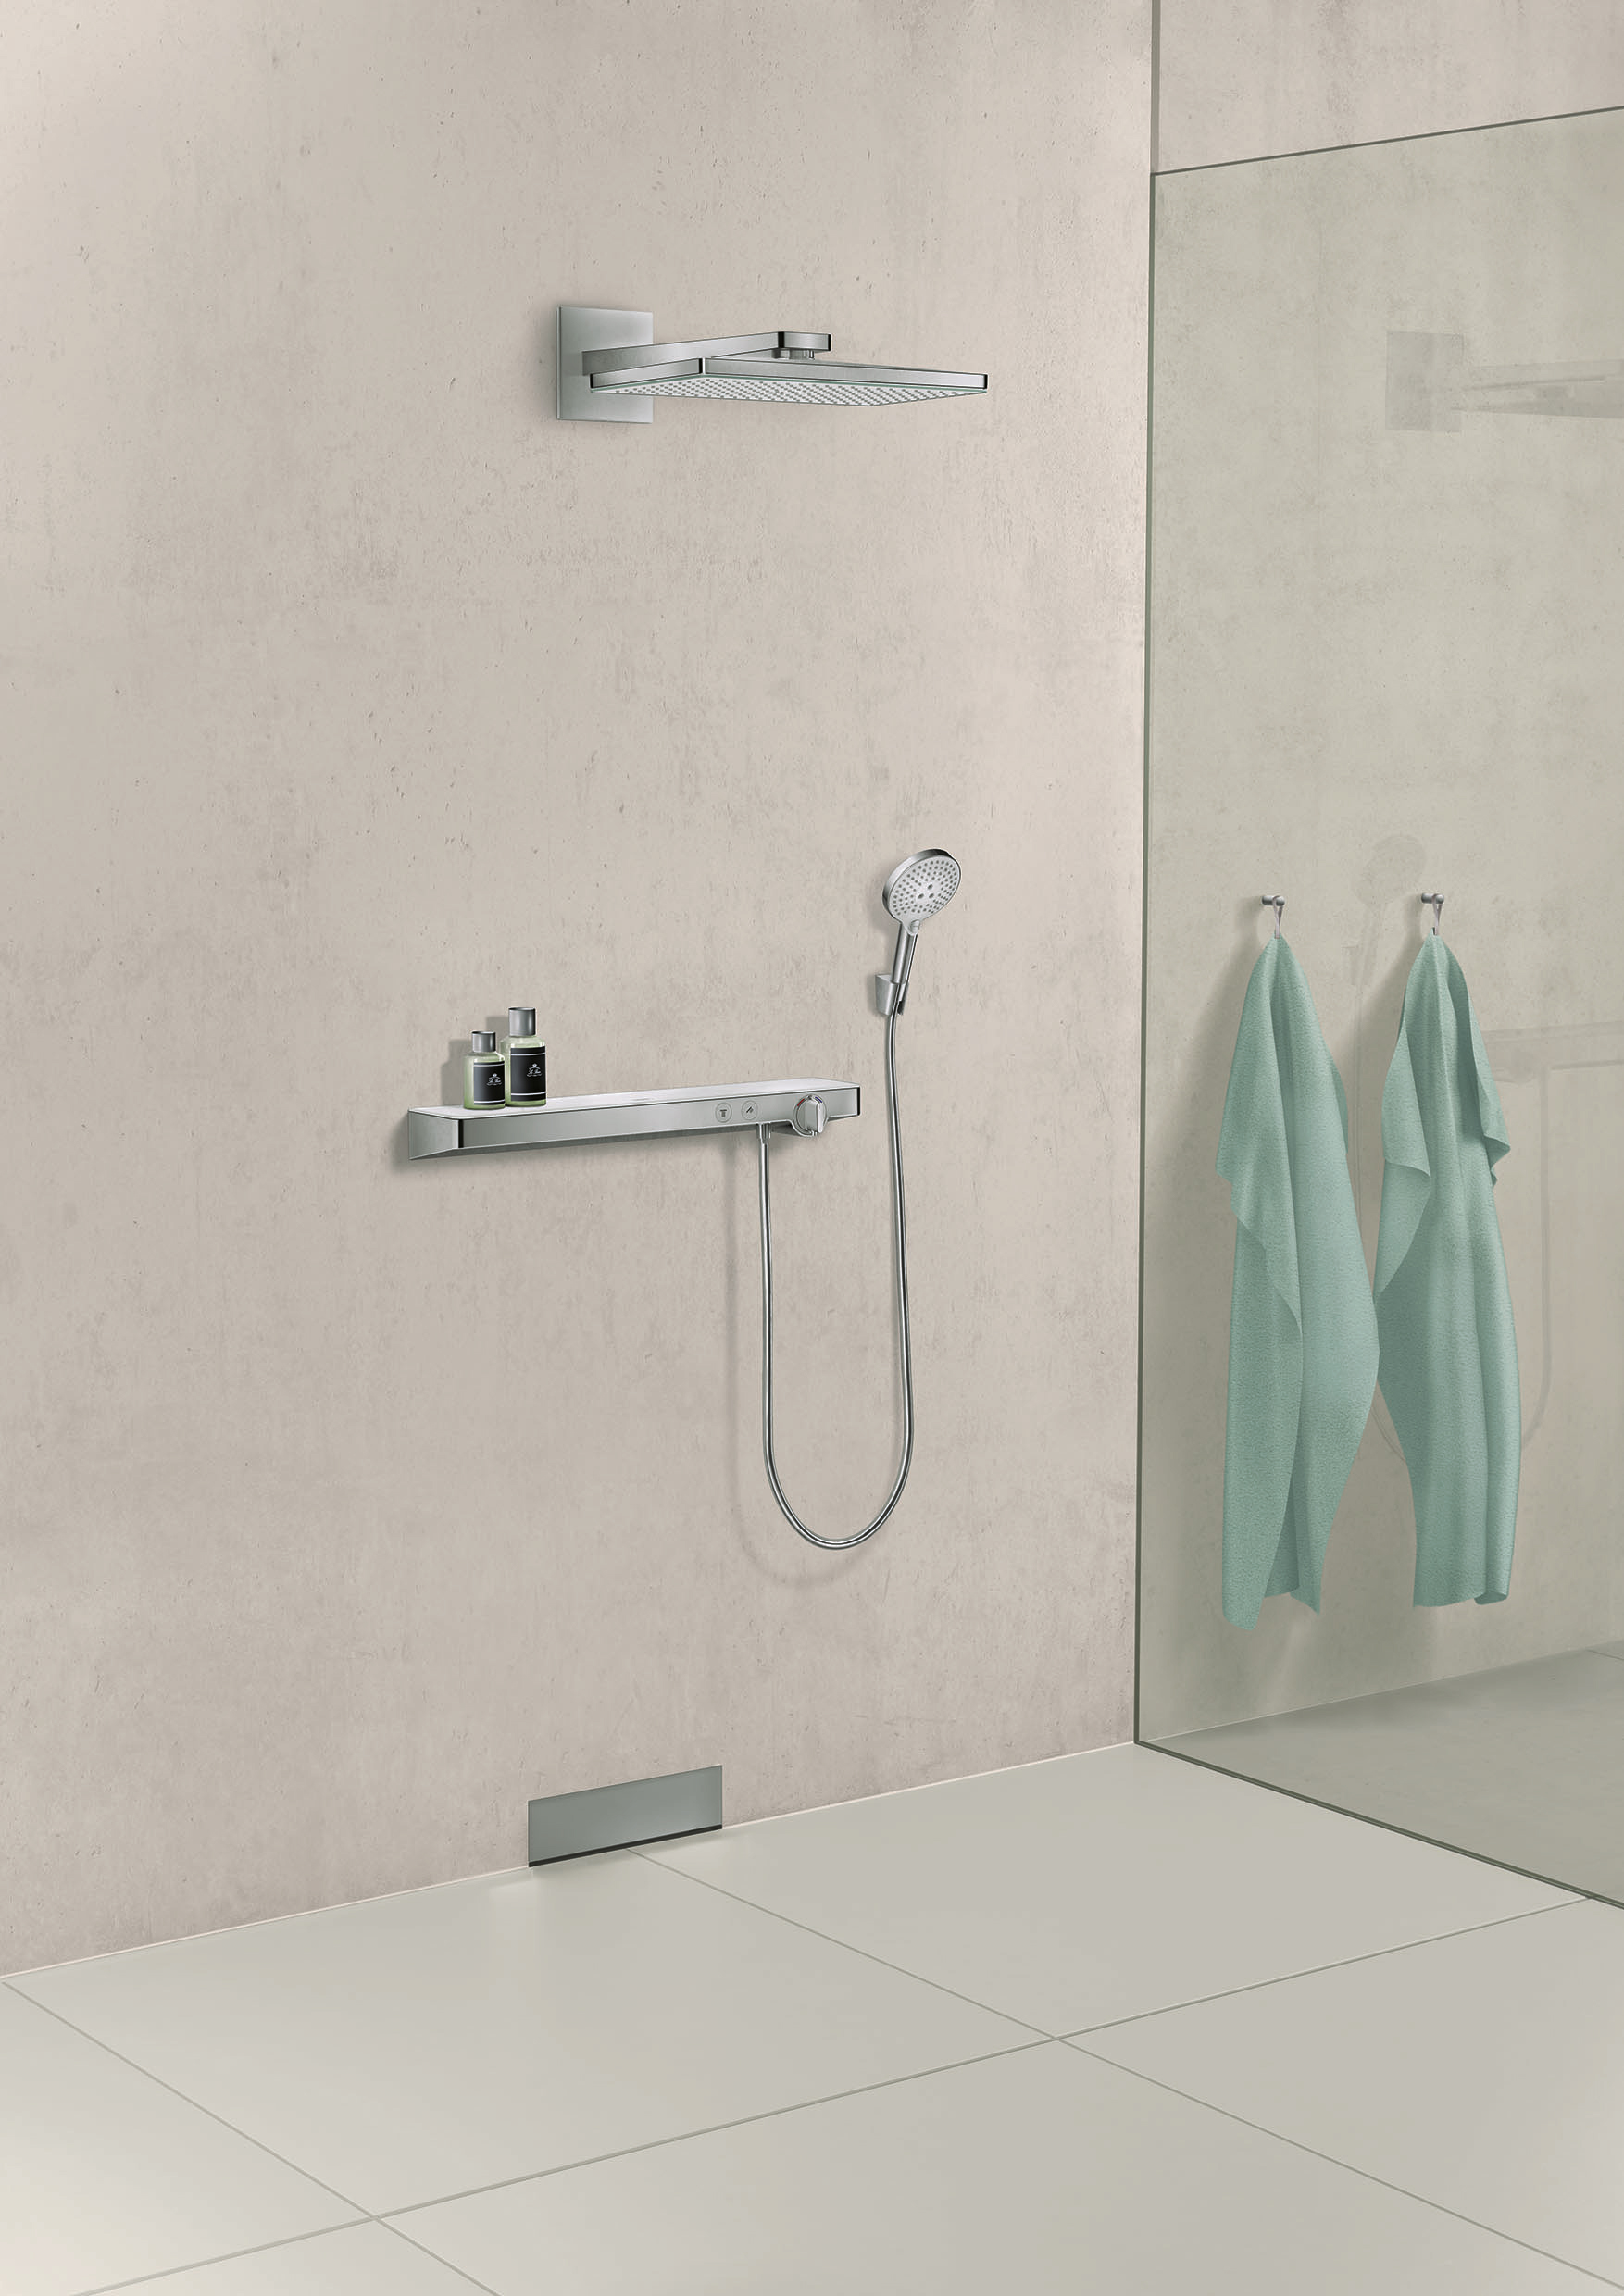 showertablet select 700 thermostatic shower mixer with. Black Bedroom Furniture Sets. Home Design Ideas